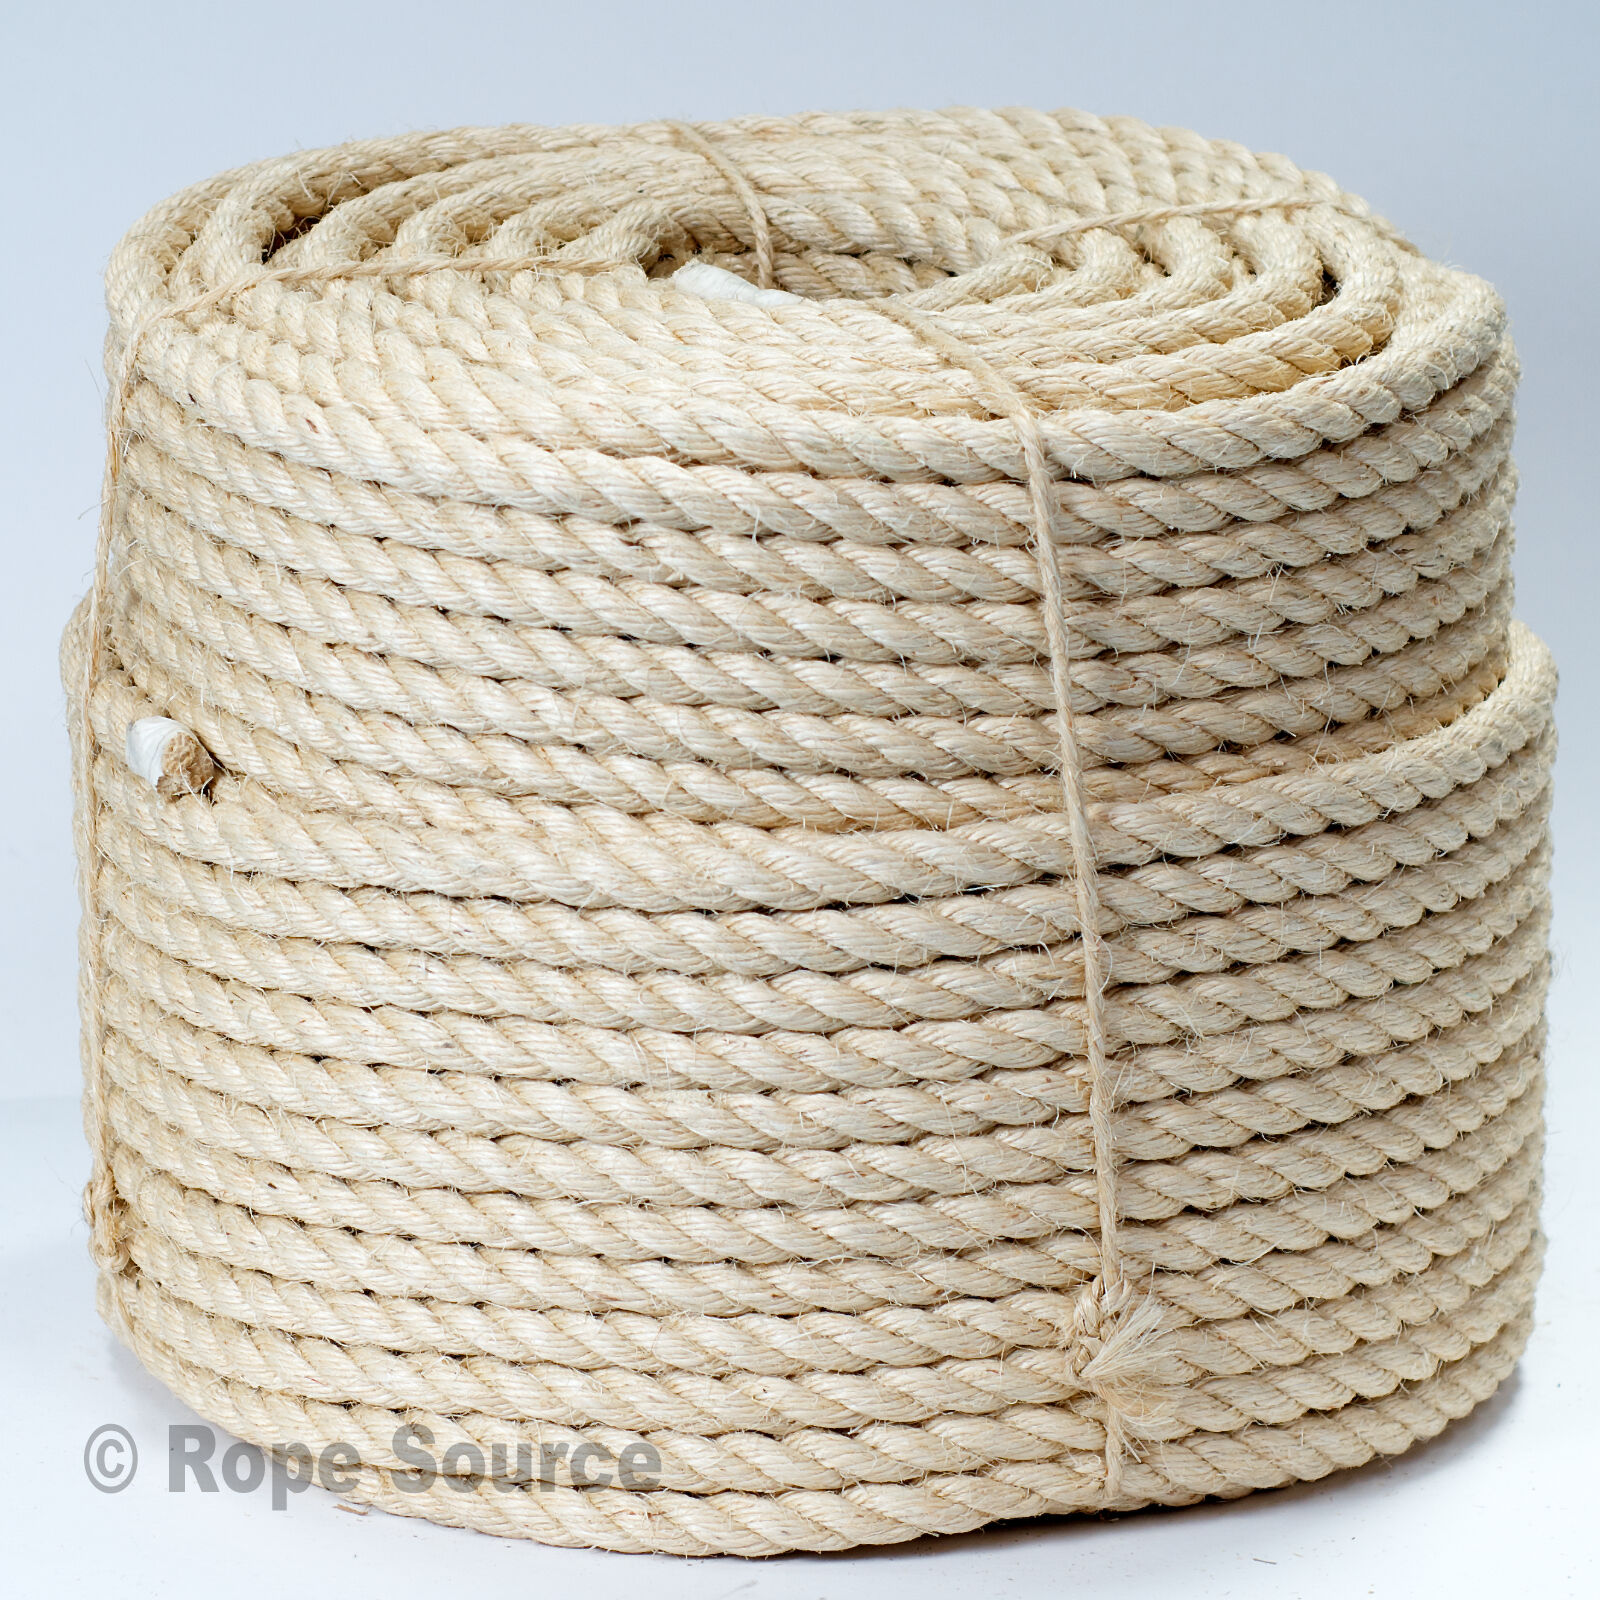 Naturale Corda Sisal 30M x 28MM - Ideale per Uso As Giardino